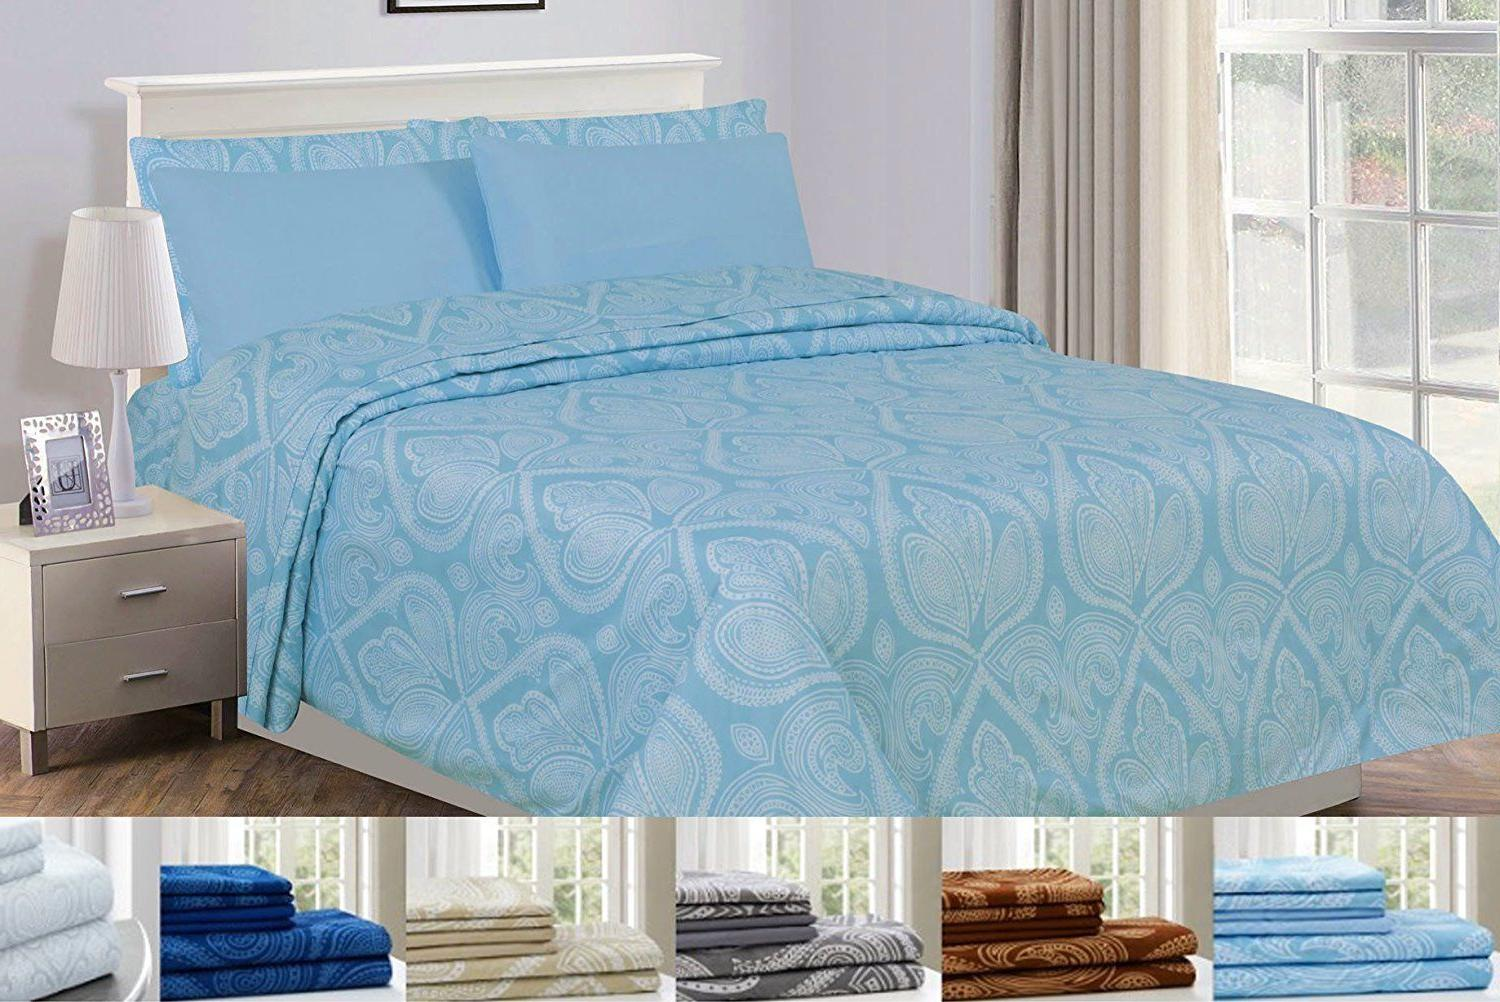 6 Piece: 1800 Series Egyptian Paisley Printed Bed Sheet Set